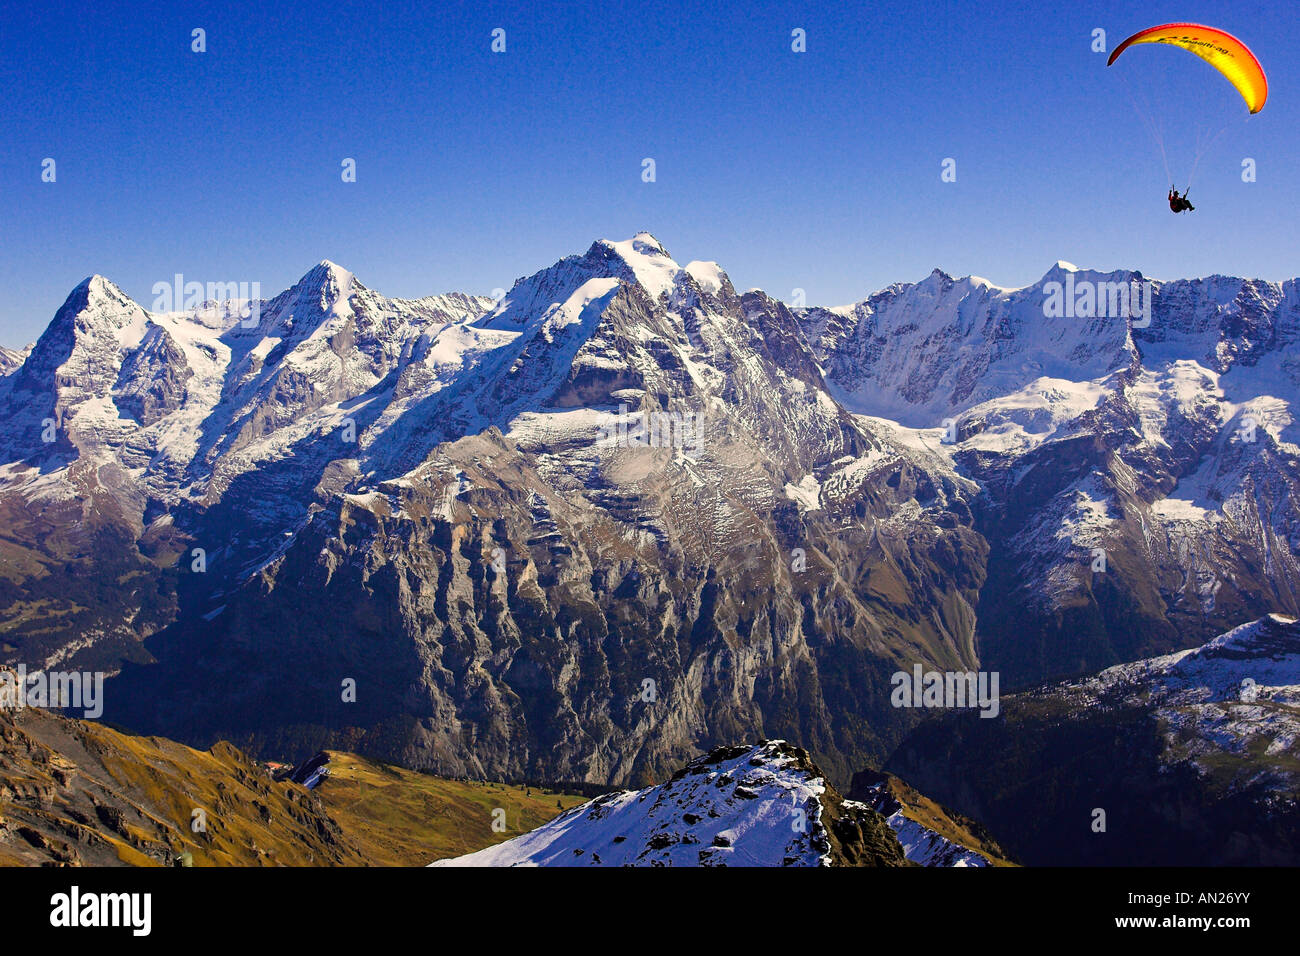 Look from Schilthorn to Eiger (l) Moench (m) and Jungfrau (r) Mountains Switzerland Berner Oberland Stock Photo